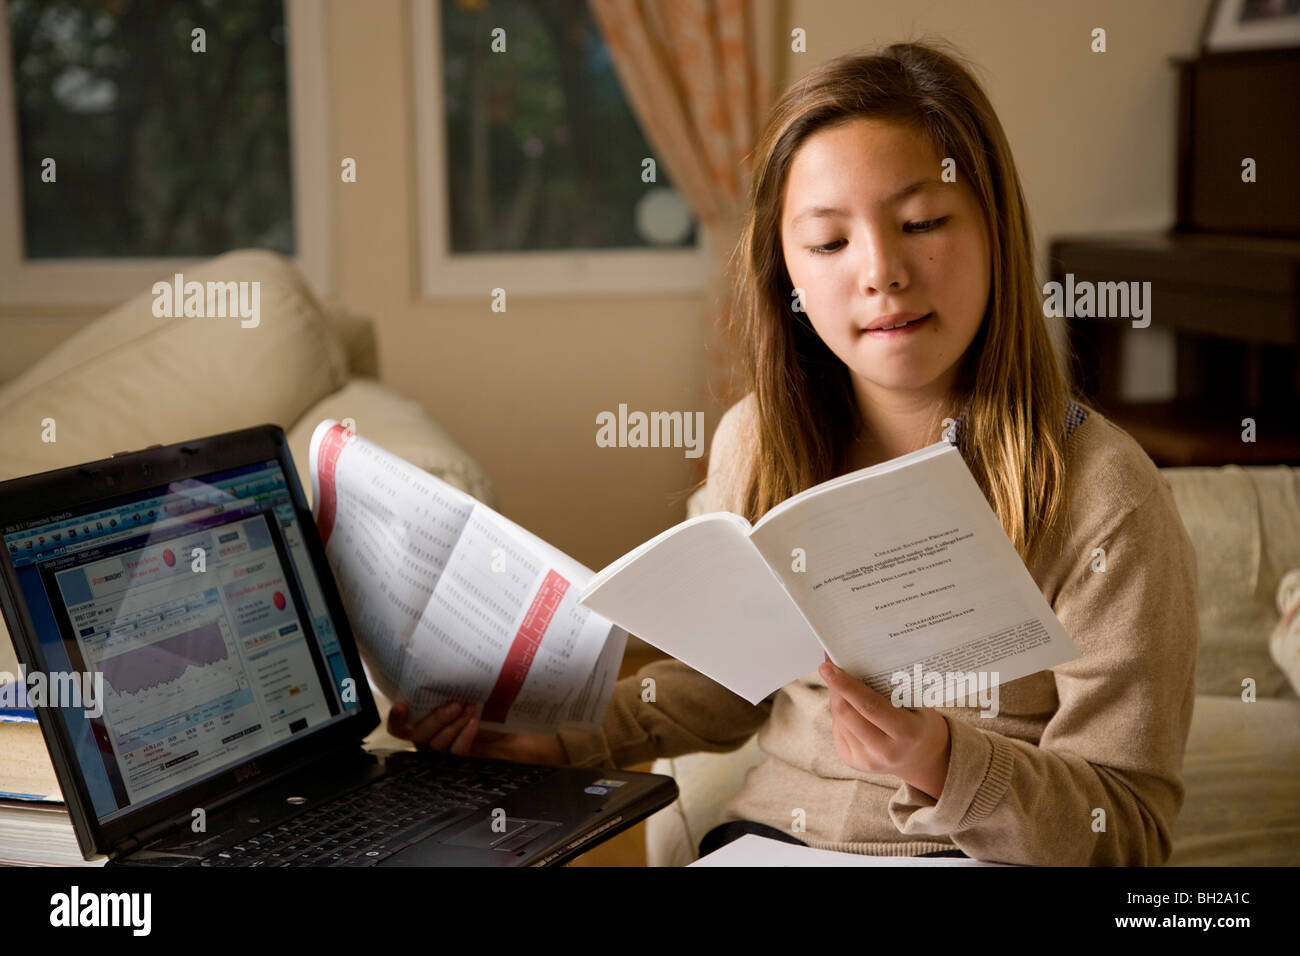 Korean/white young girl 11 years old, does financial research and investing online. - Stock Image